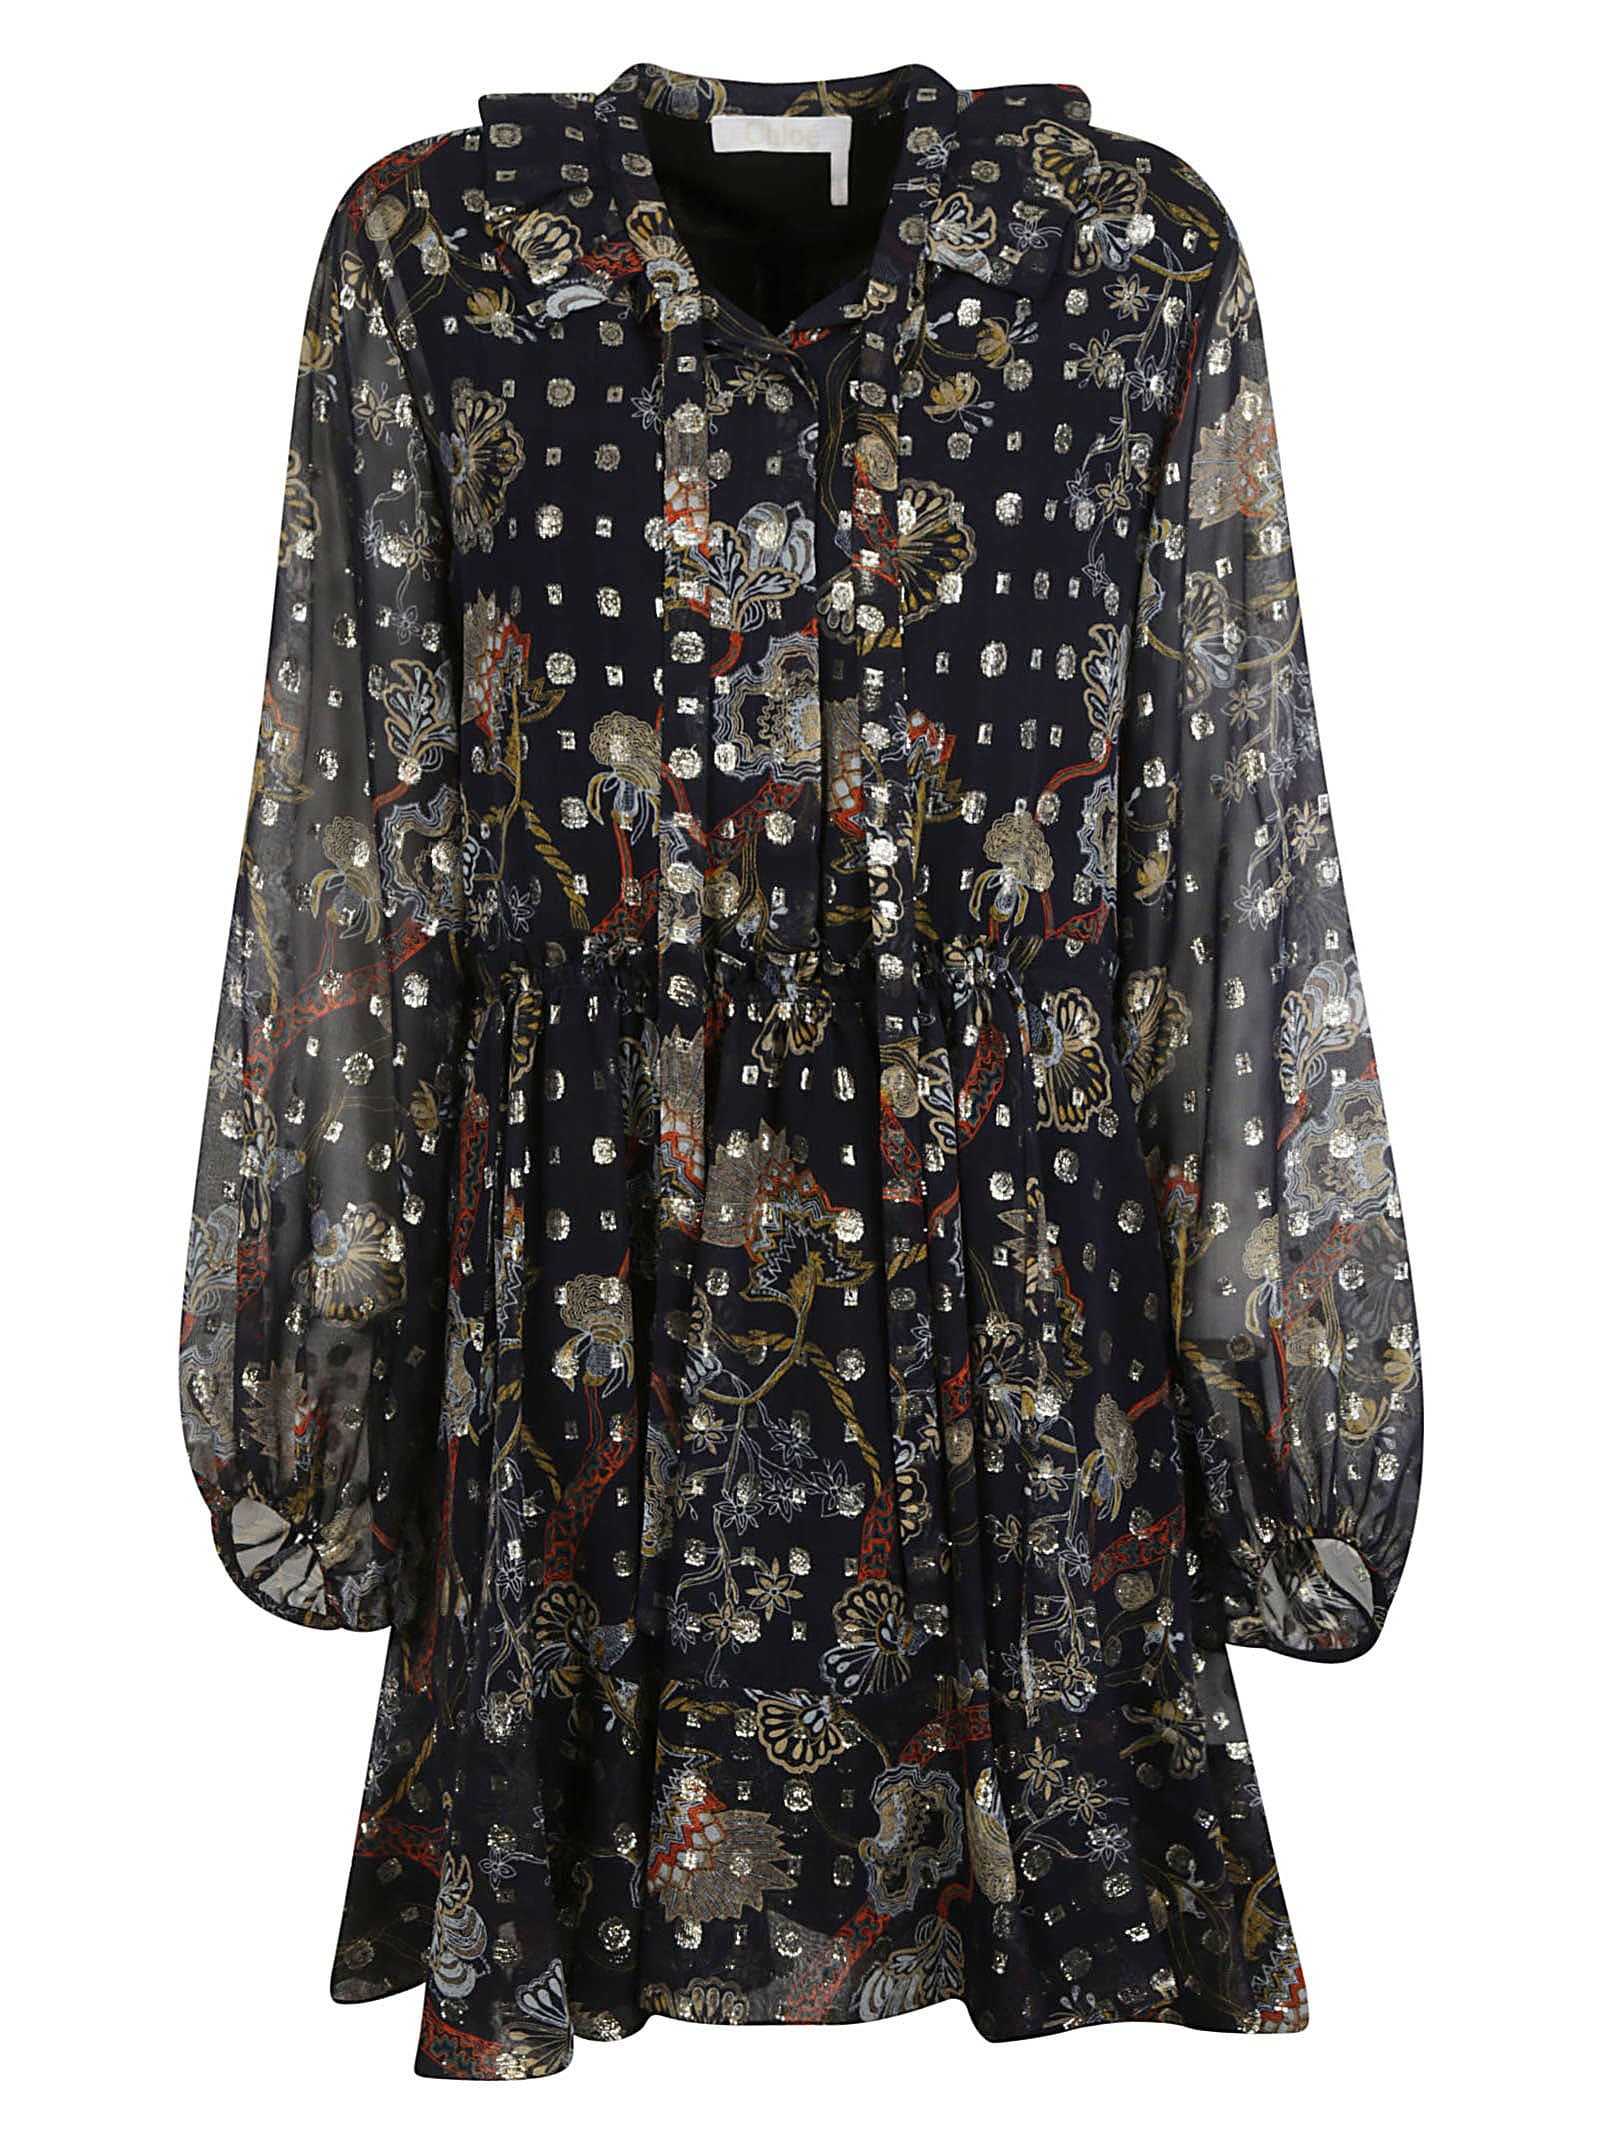 Buy Chloé Embellished All-over Dress online, shop Chloé with free shipping